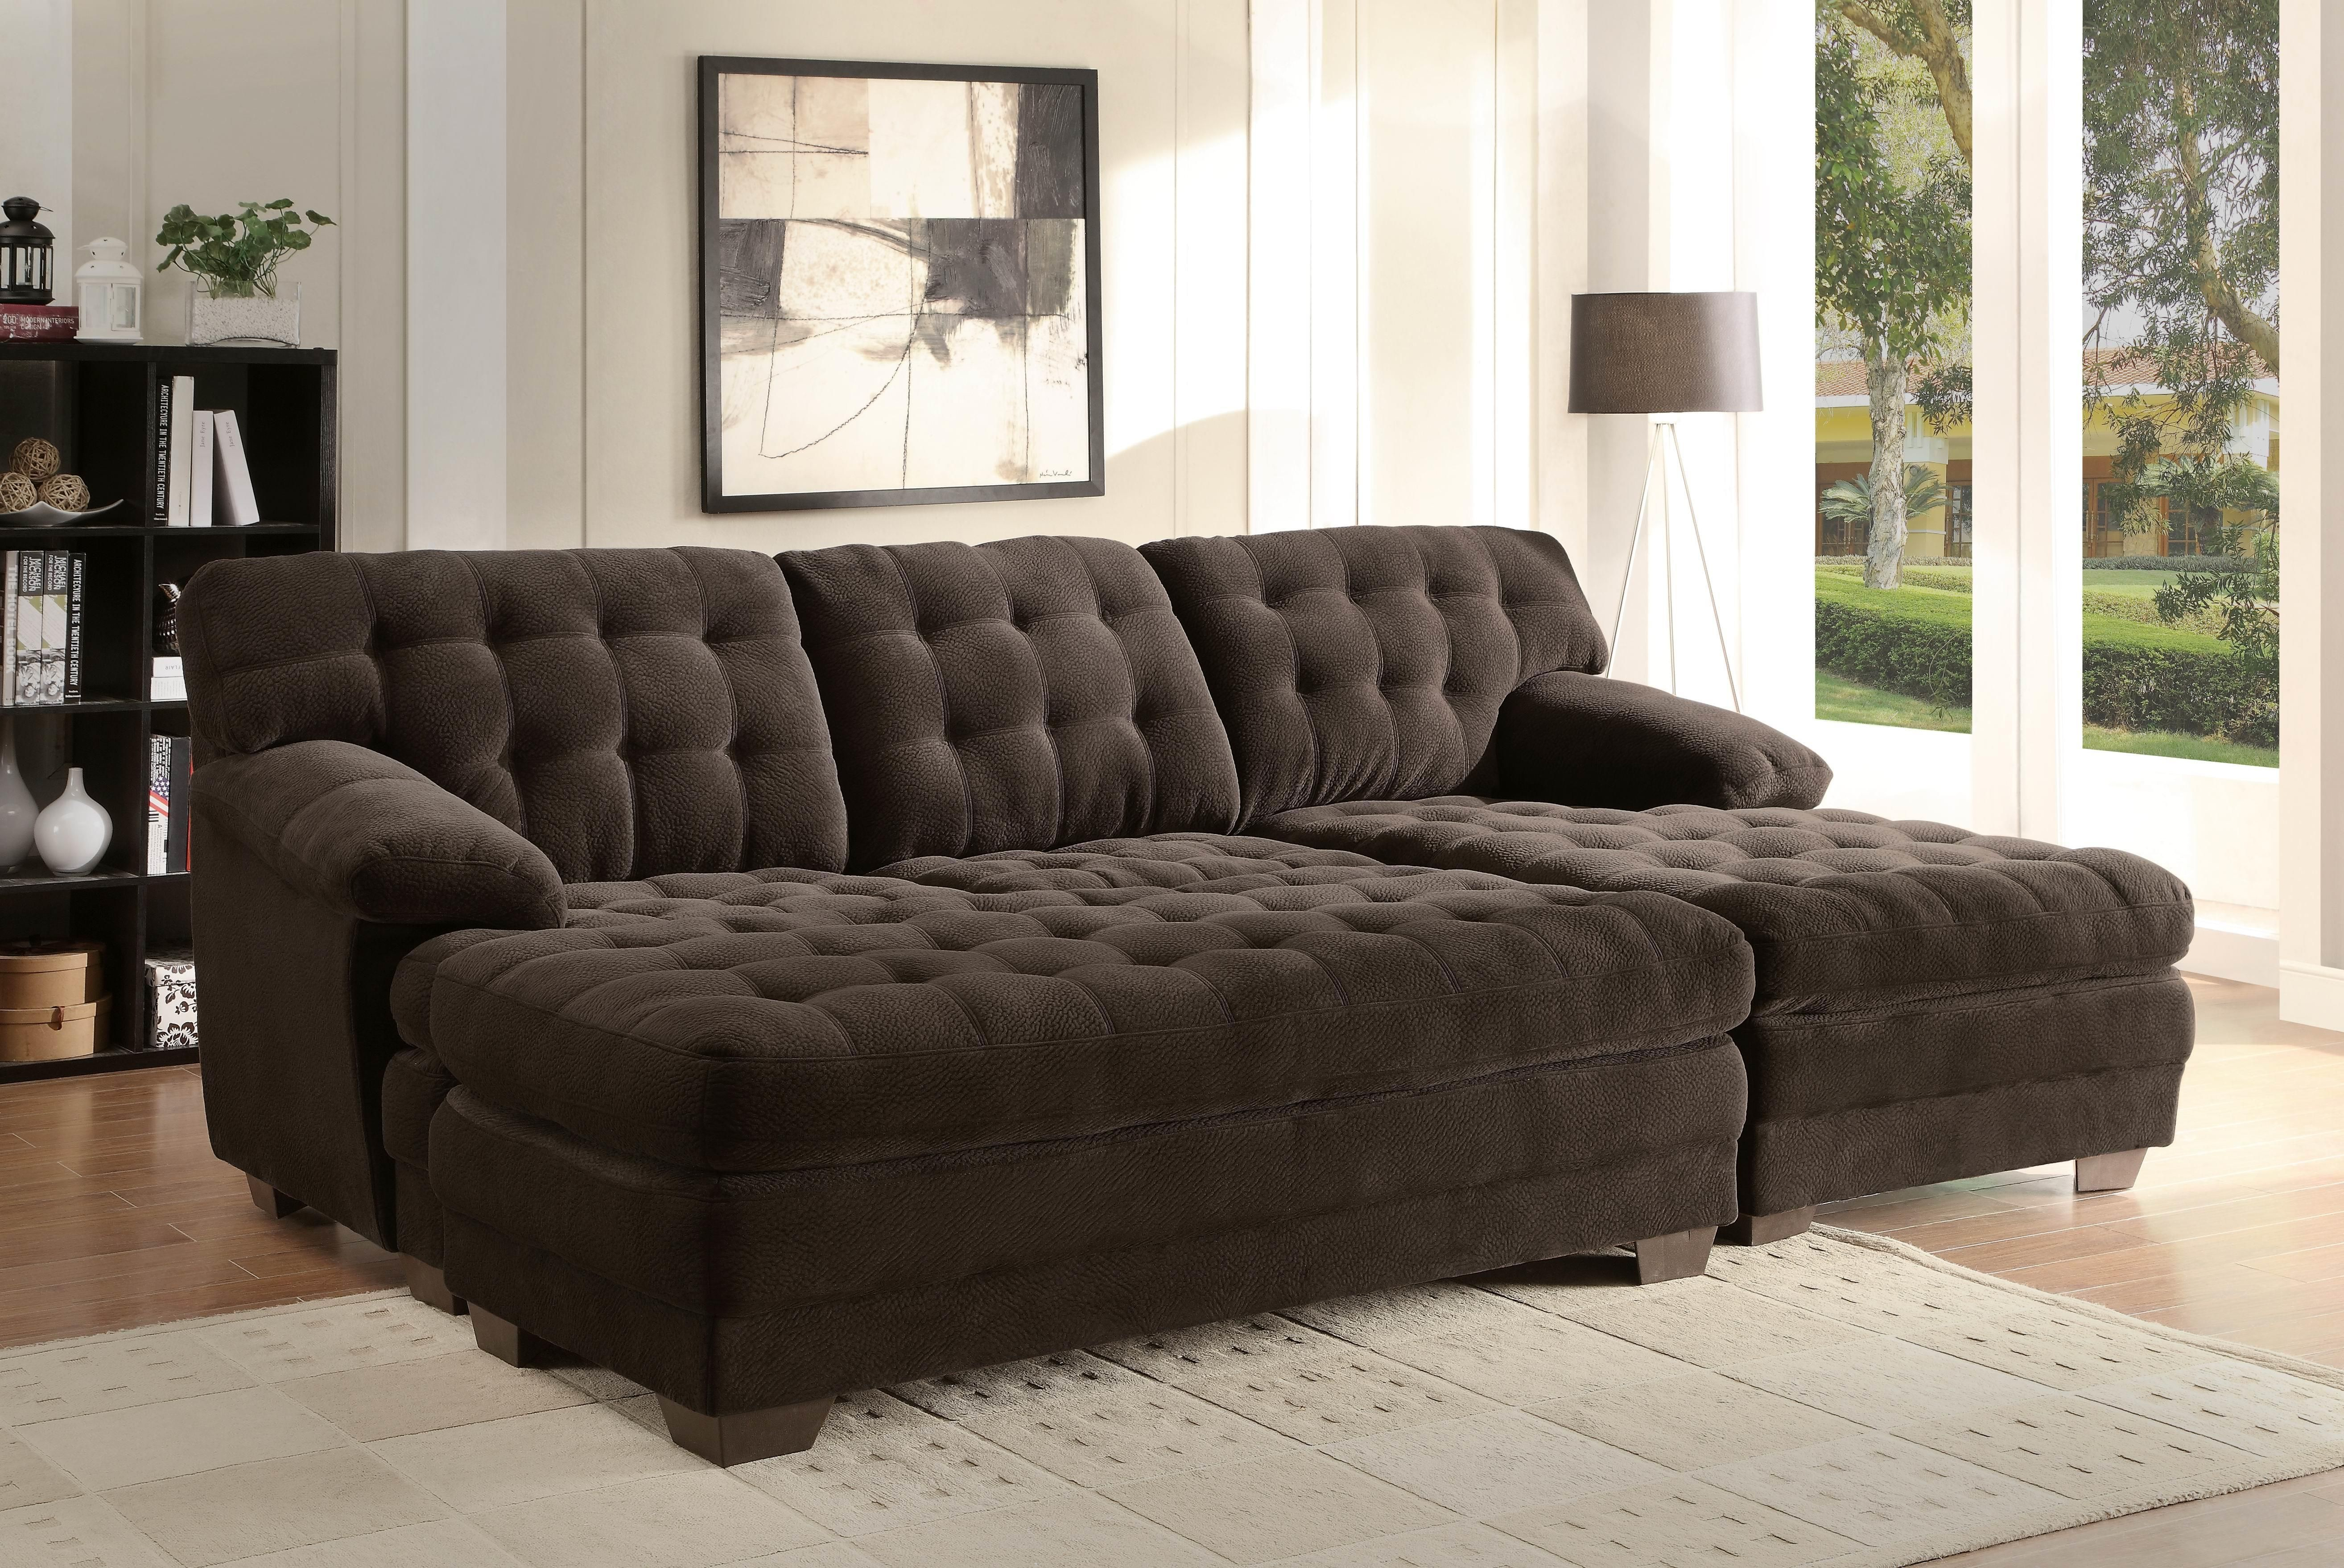 Brown Leather Couch Living Room Decor Small Spaces